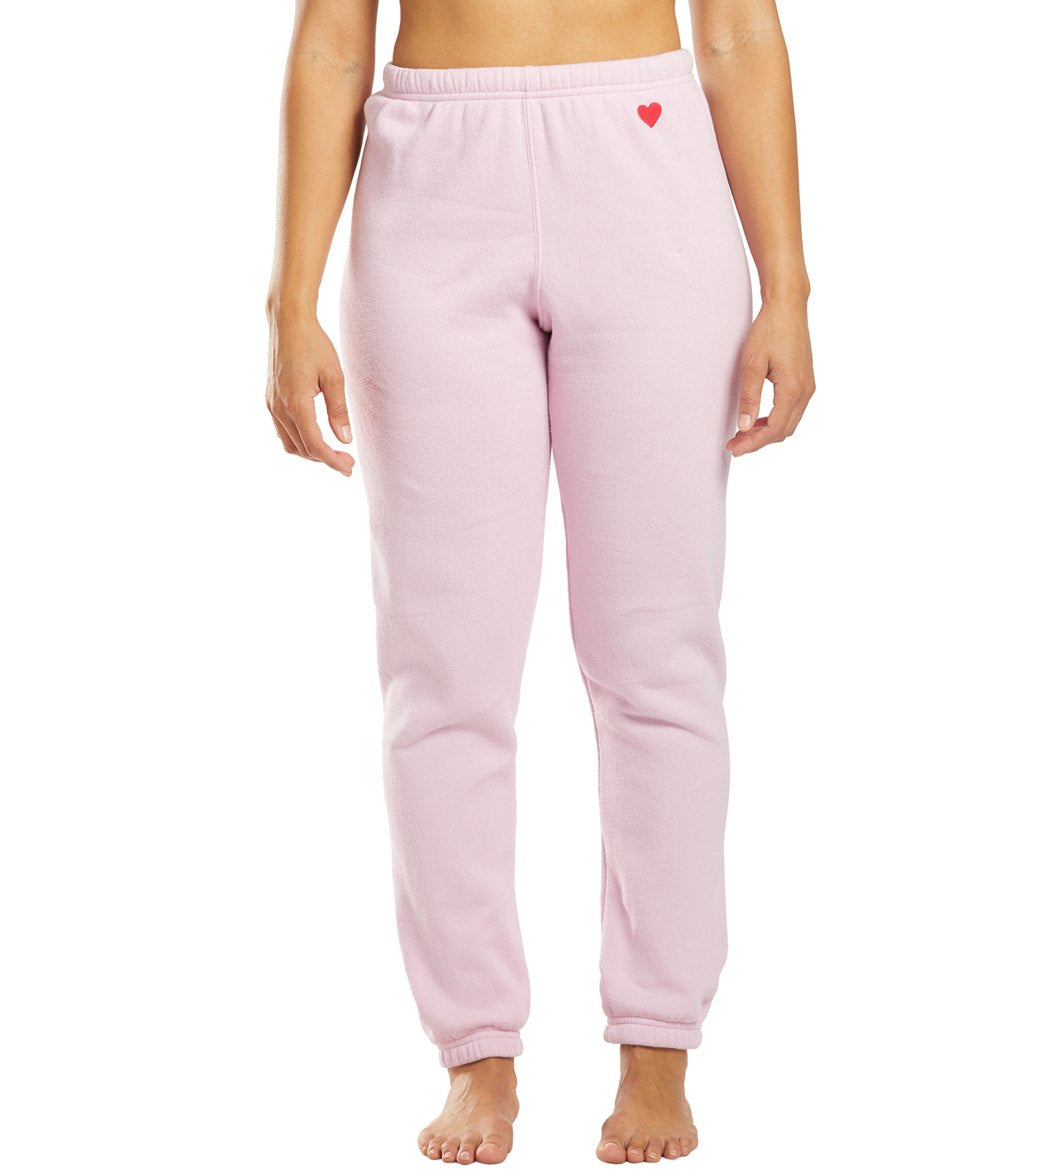 Spiritual Gangster Heart Sessions Sweatpants - Pink Orchid Cotton